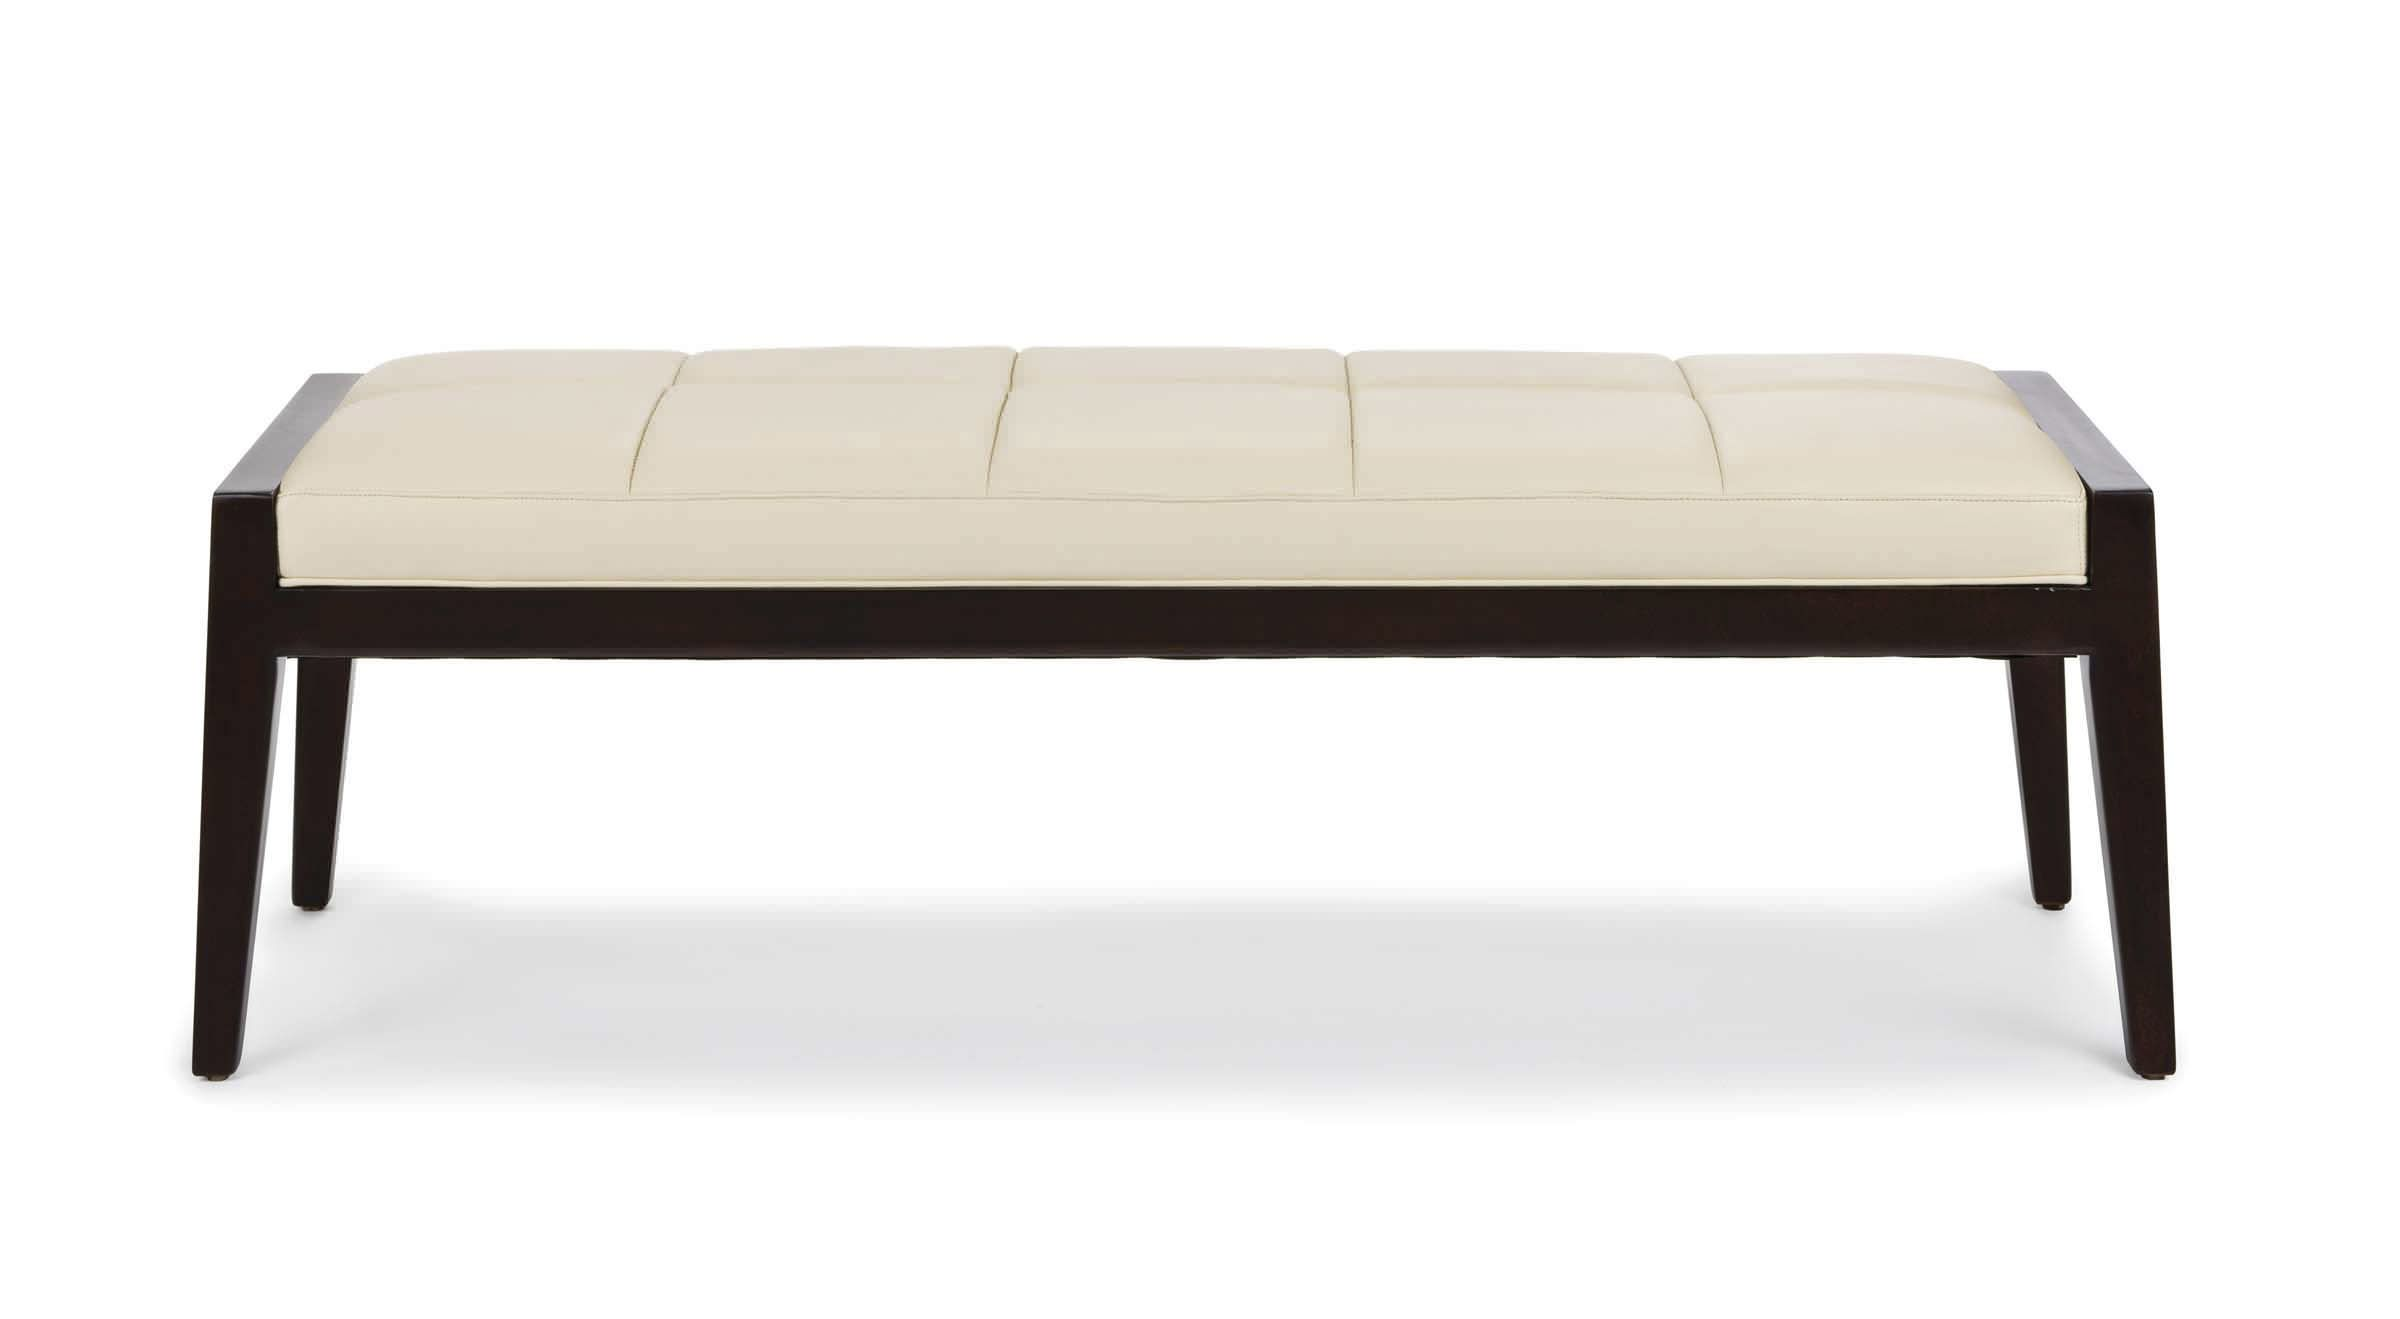 Contemporary upholstered bench leather white ascari hancock and moore bathroom benches White upholstered bench